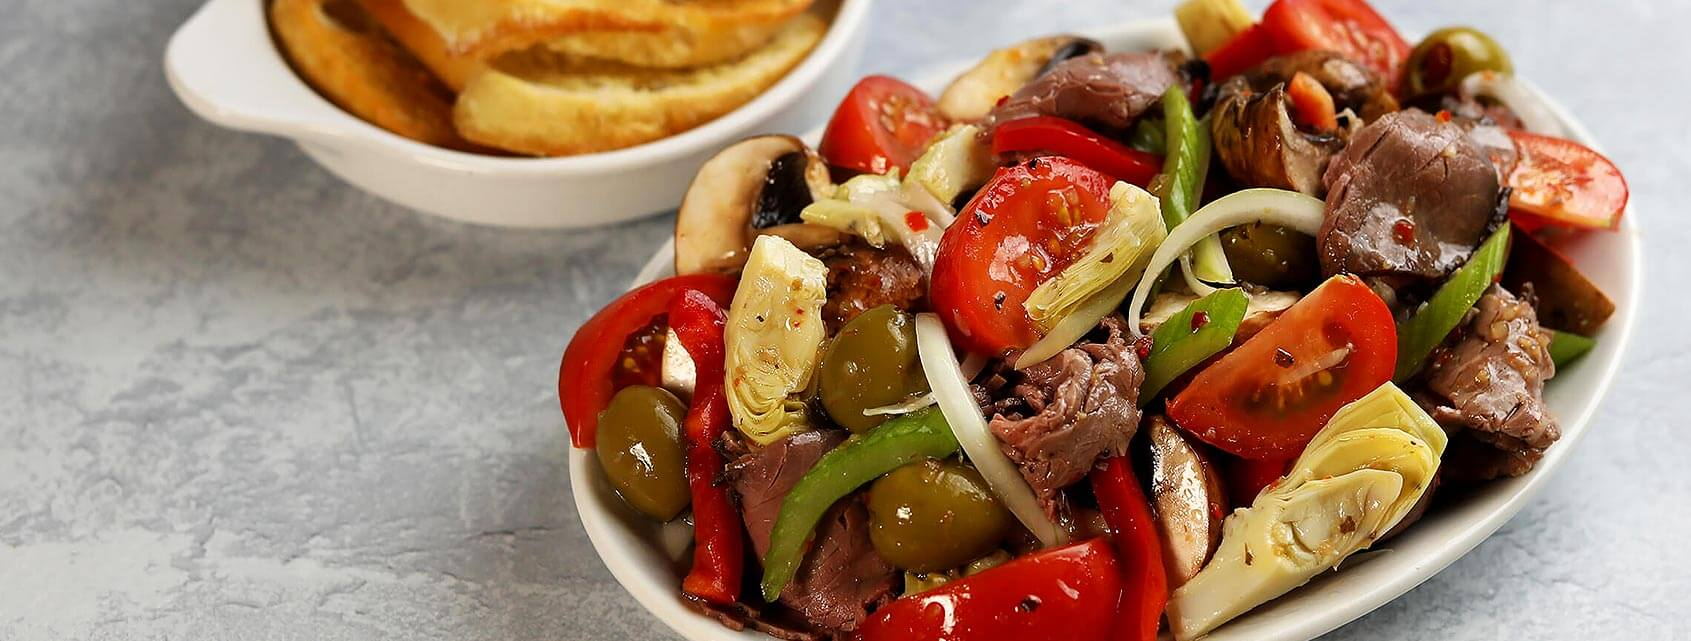 antipasto-homemade-appetizers.jpg